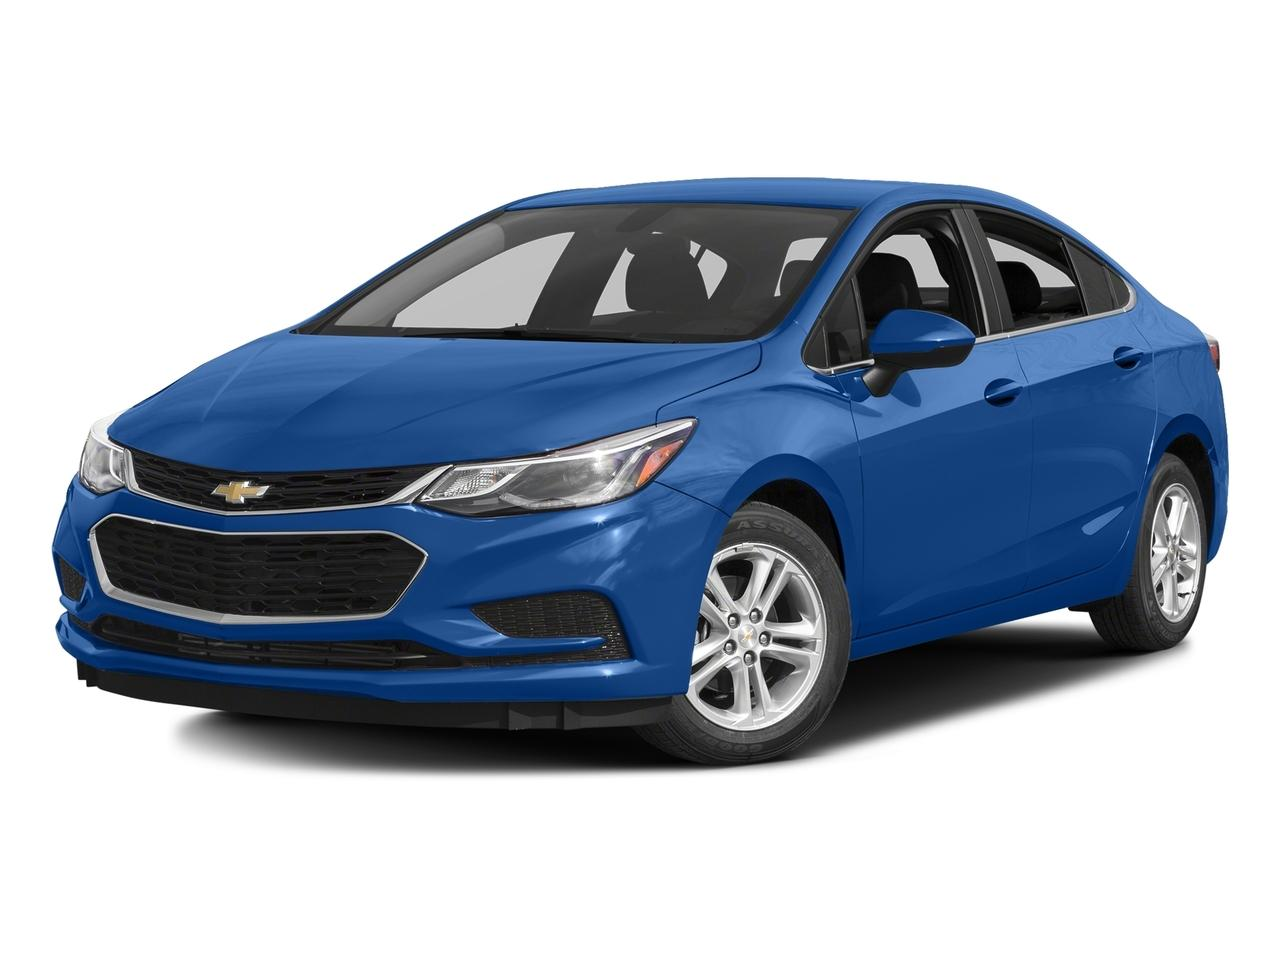 2017 Chevrolet Cruze Vehicle Photo in Mount Horeb, WI 53572